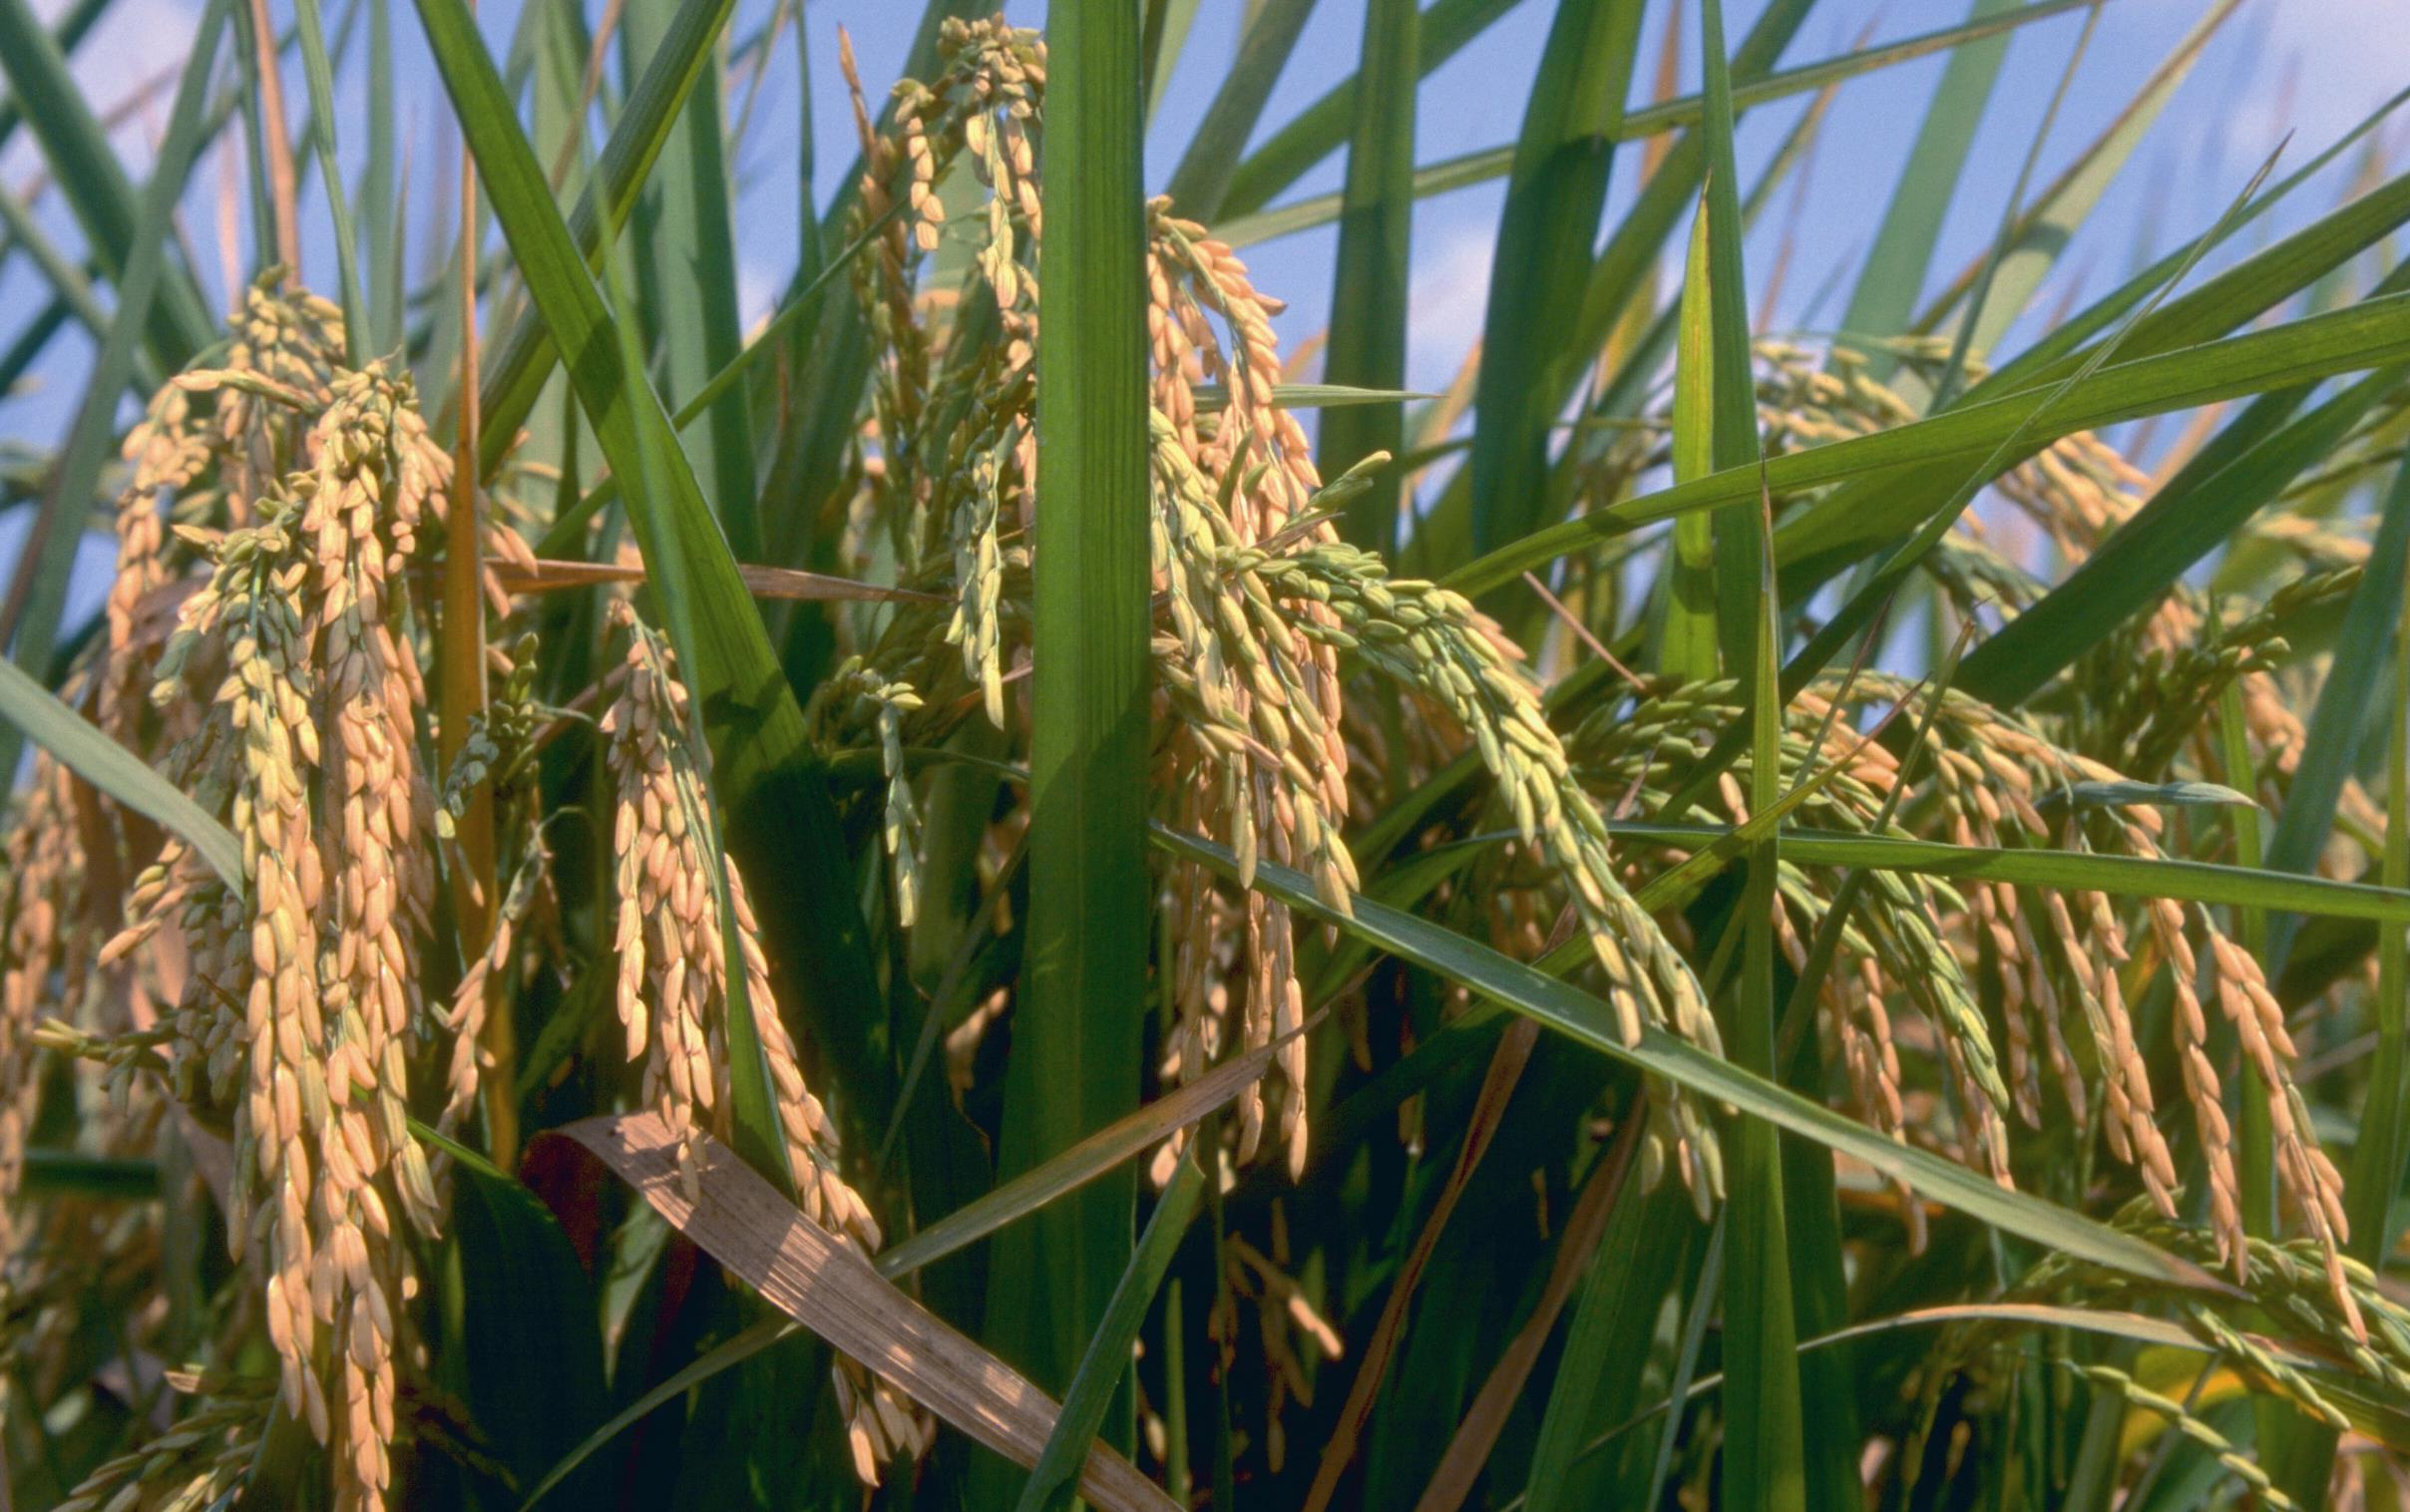 Closeup of maturing rice plant with golden and green rice heads, blue sky background